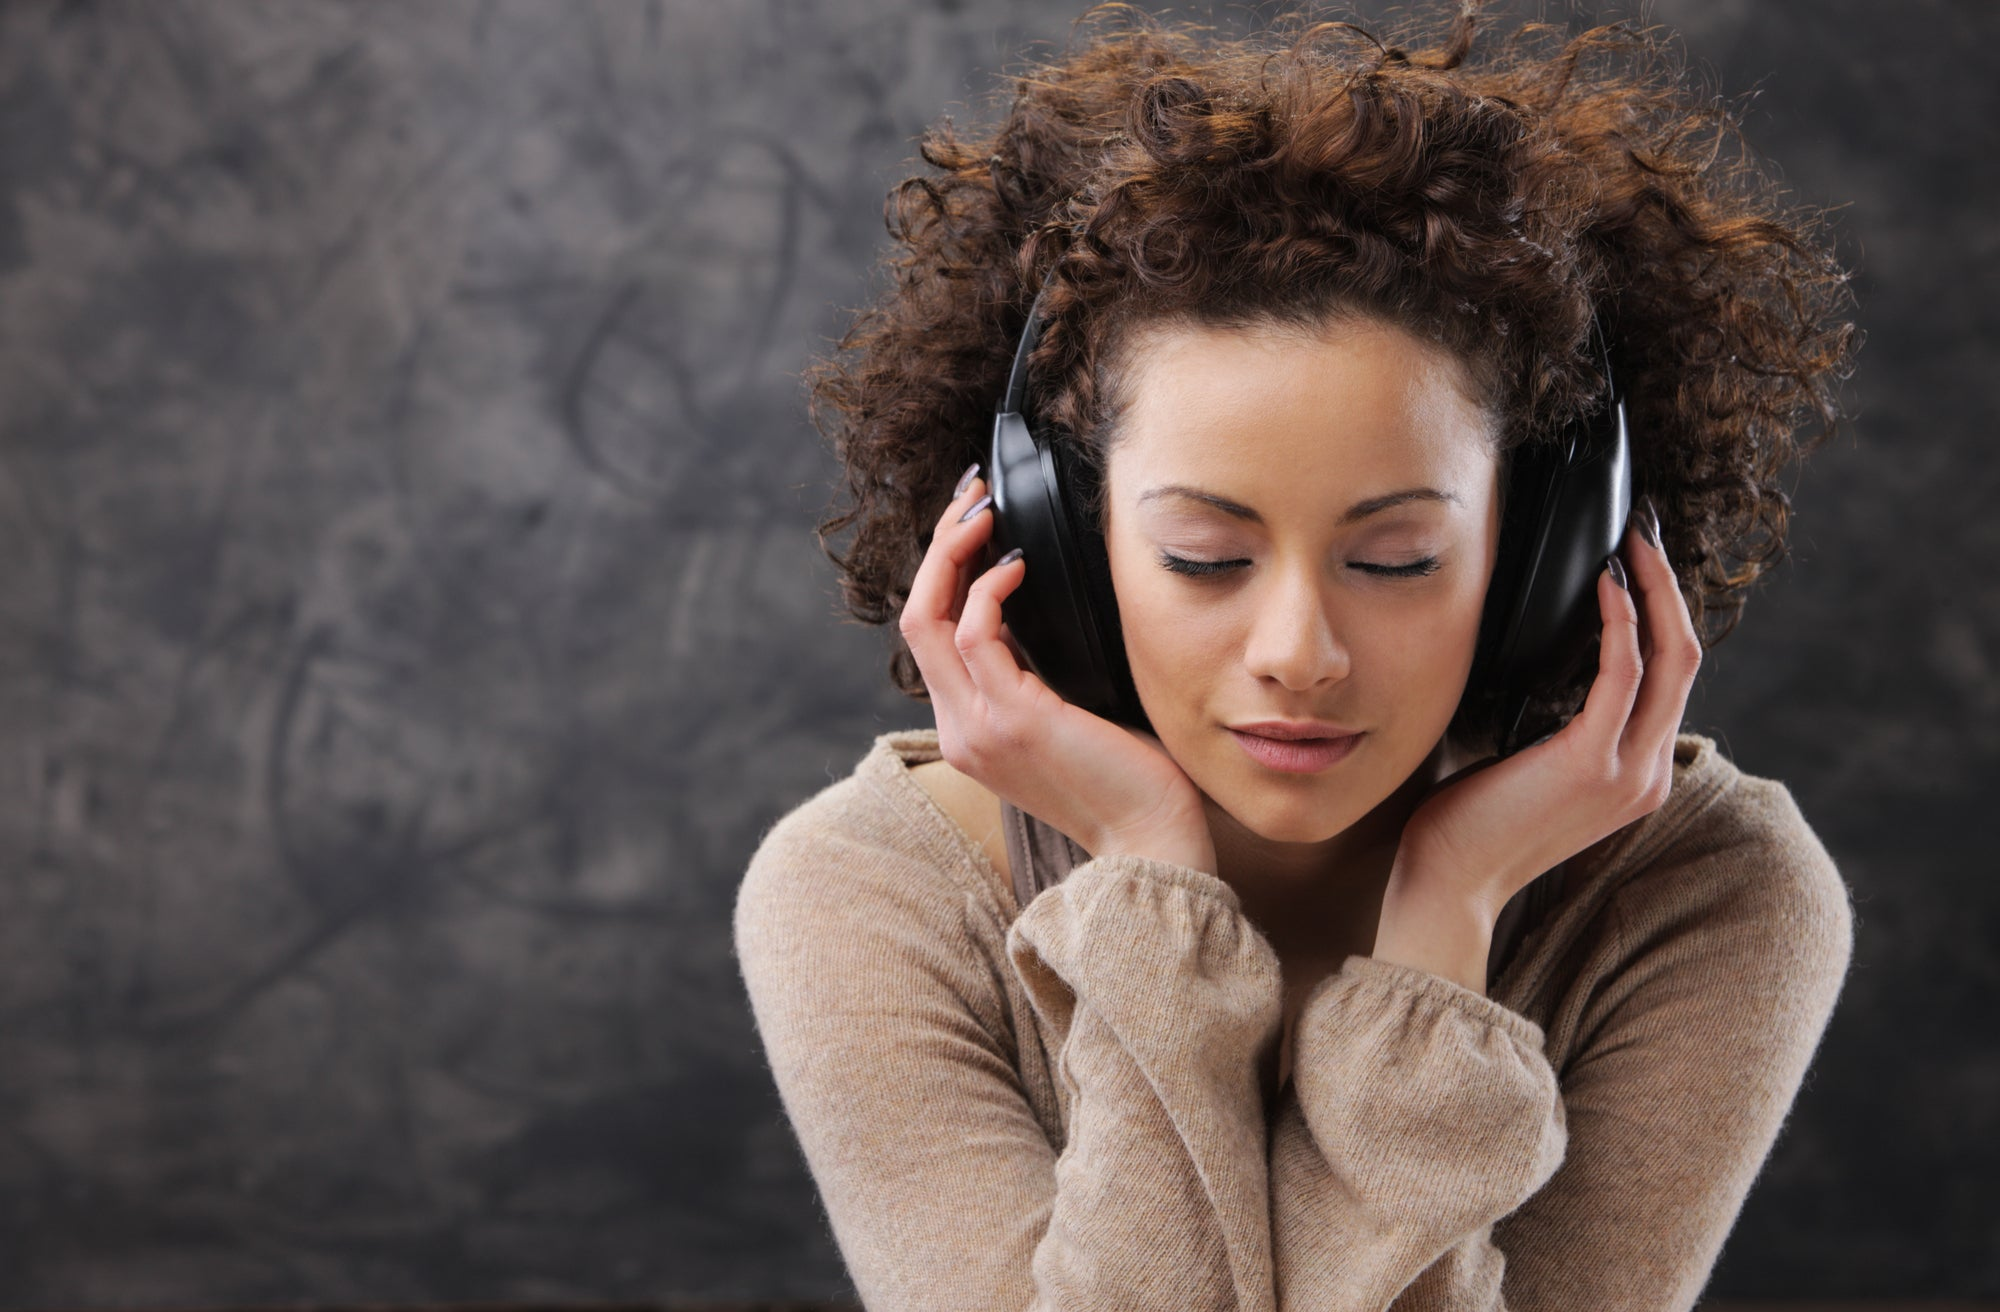 a woman with her eyes closed listening to something with headphones